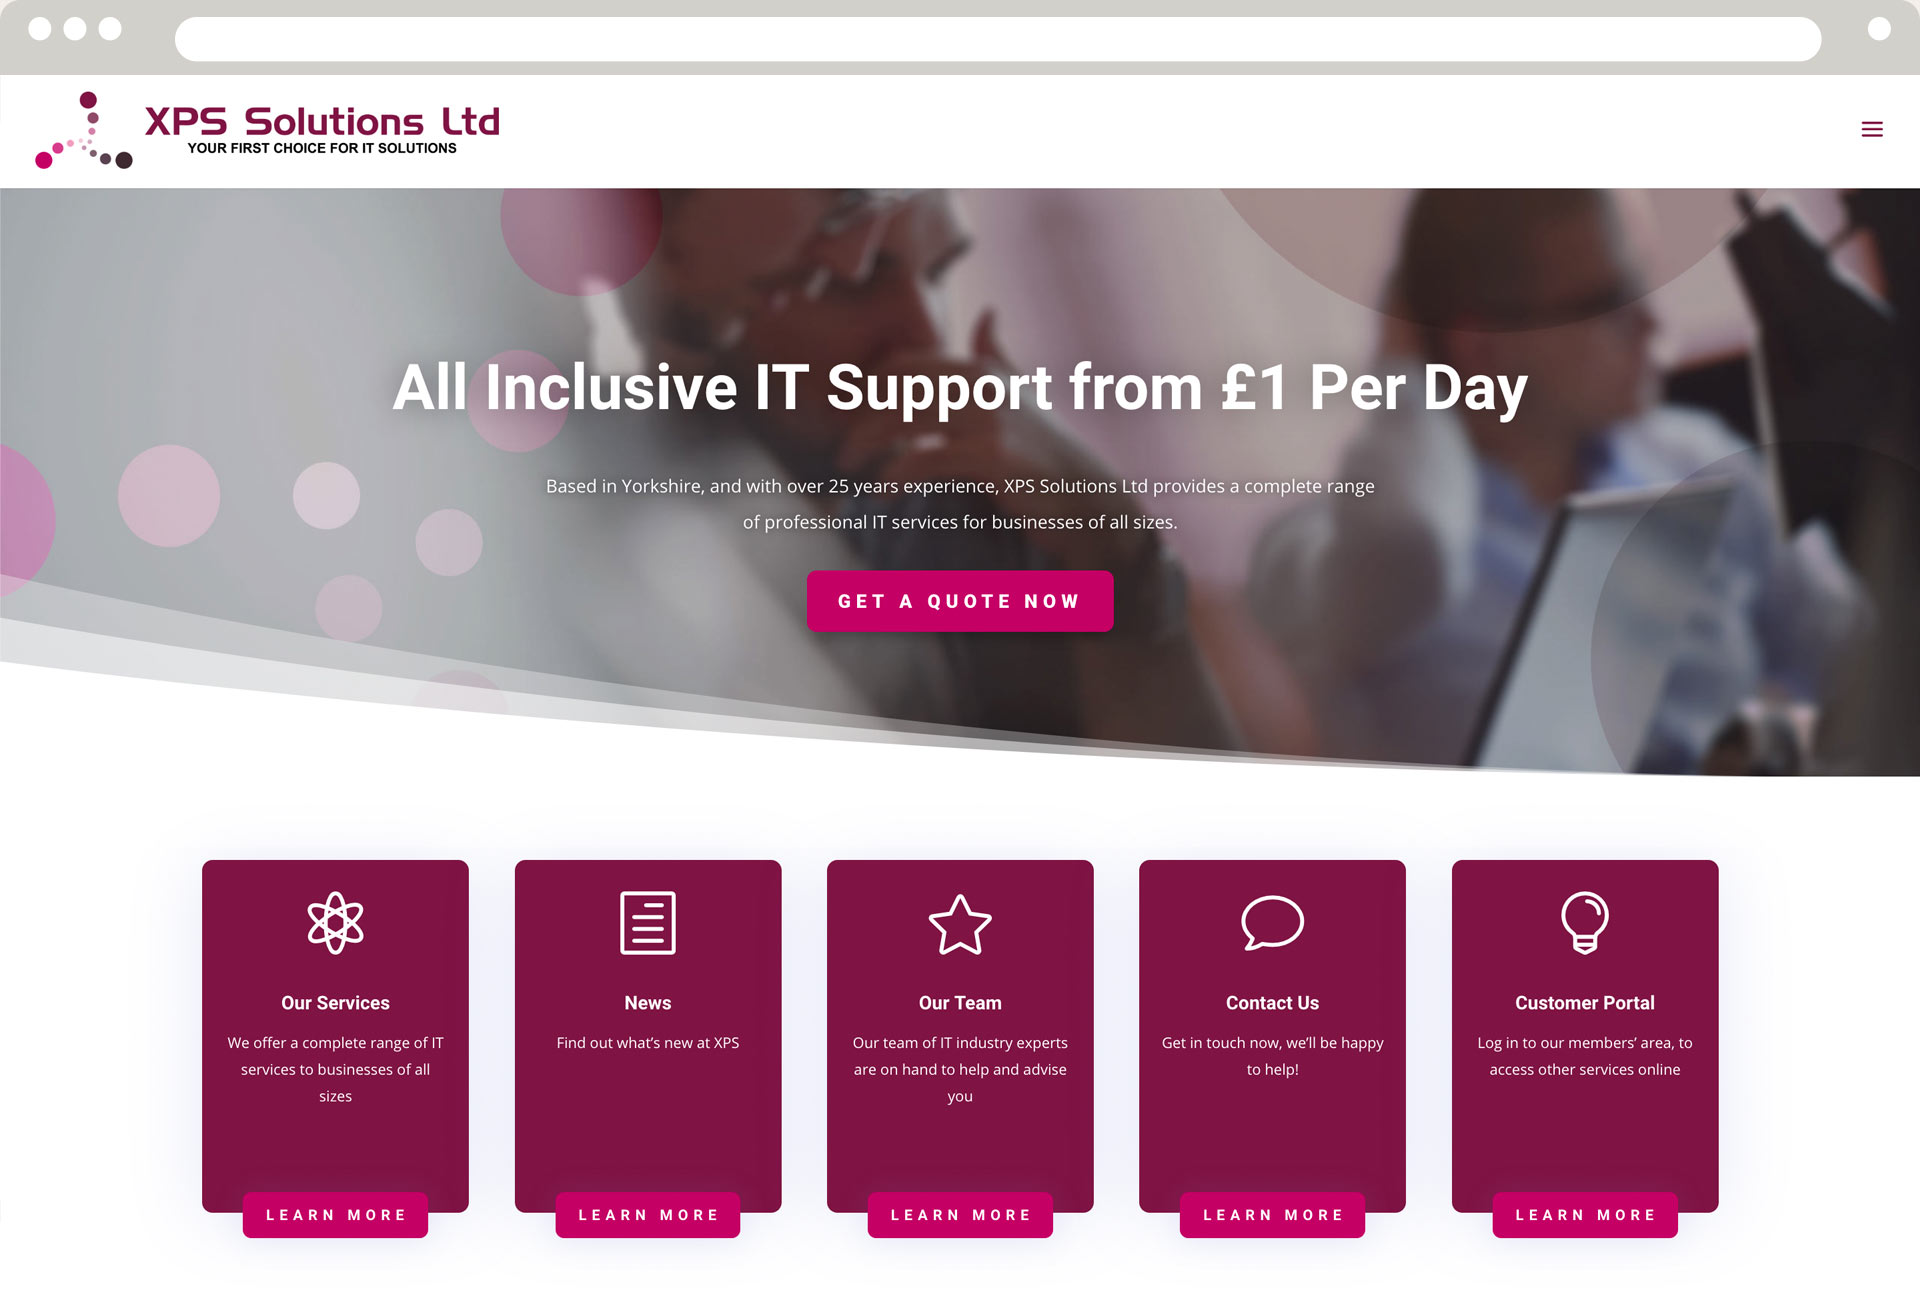 XPS Solutions Homepage - Desktop View